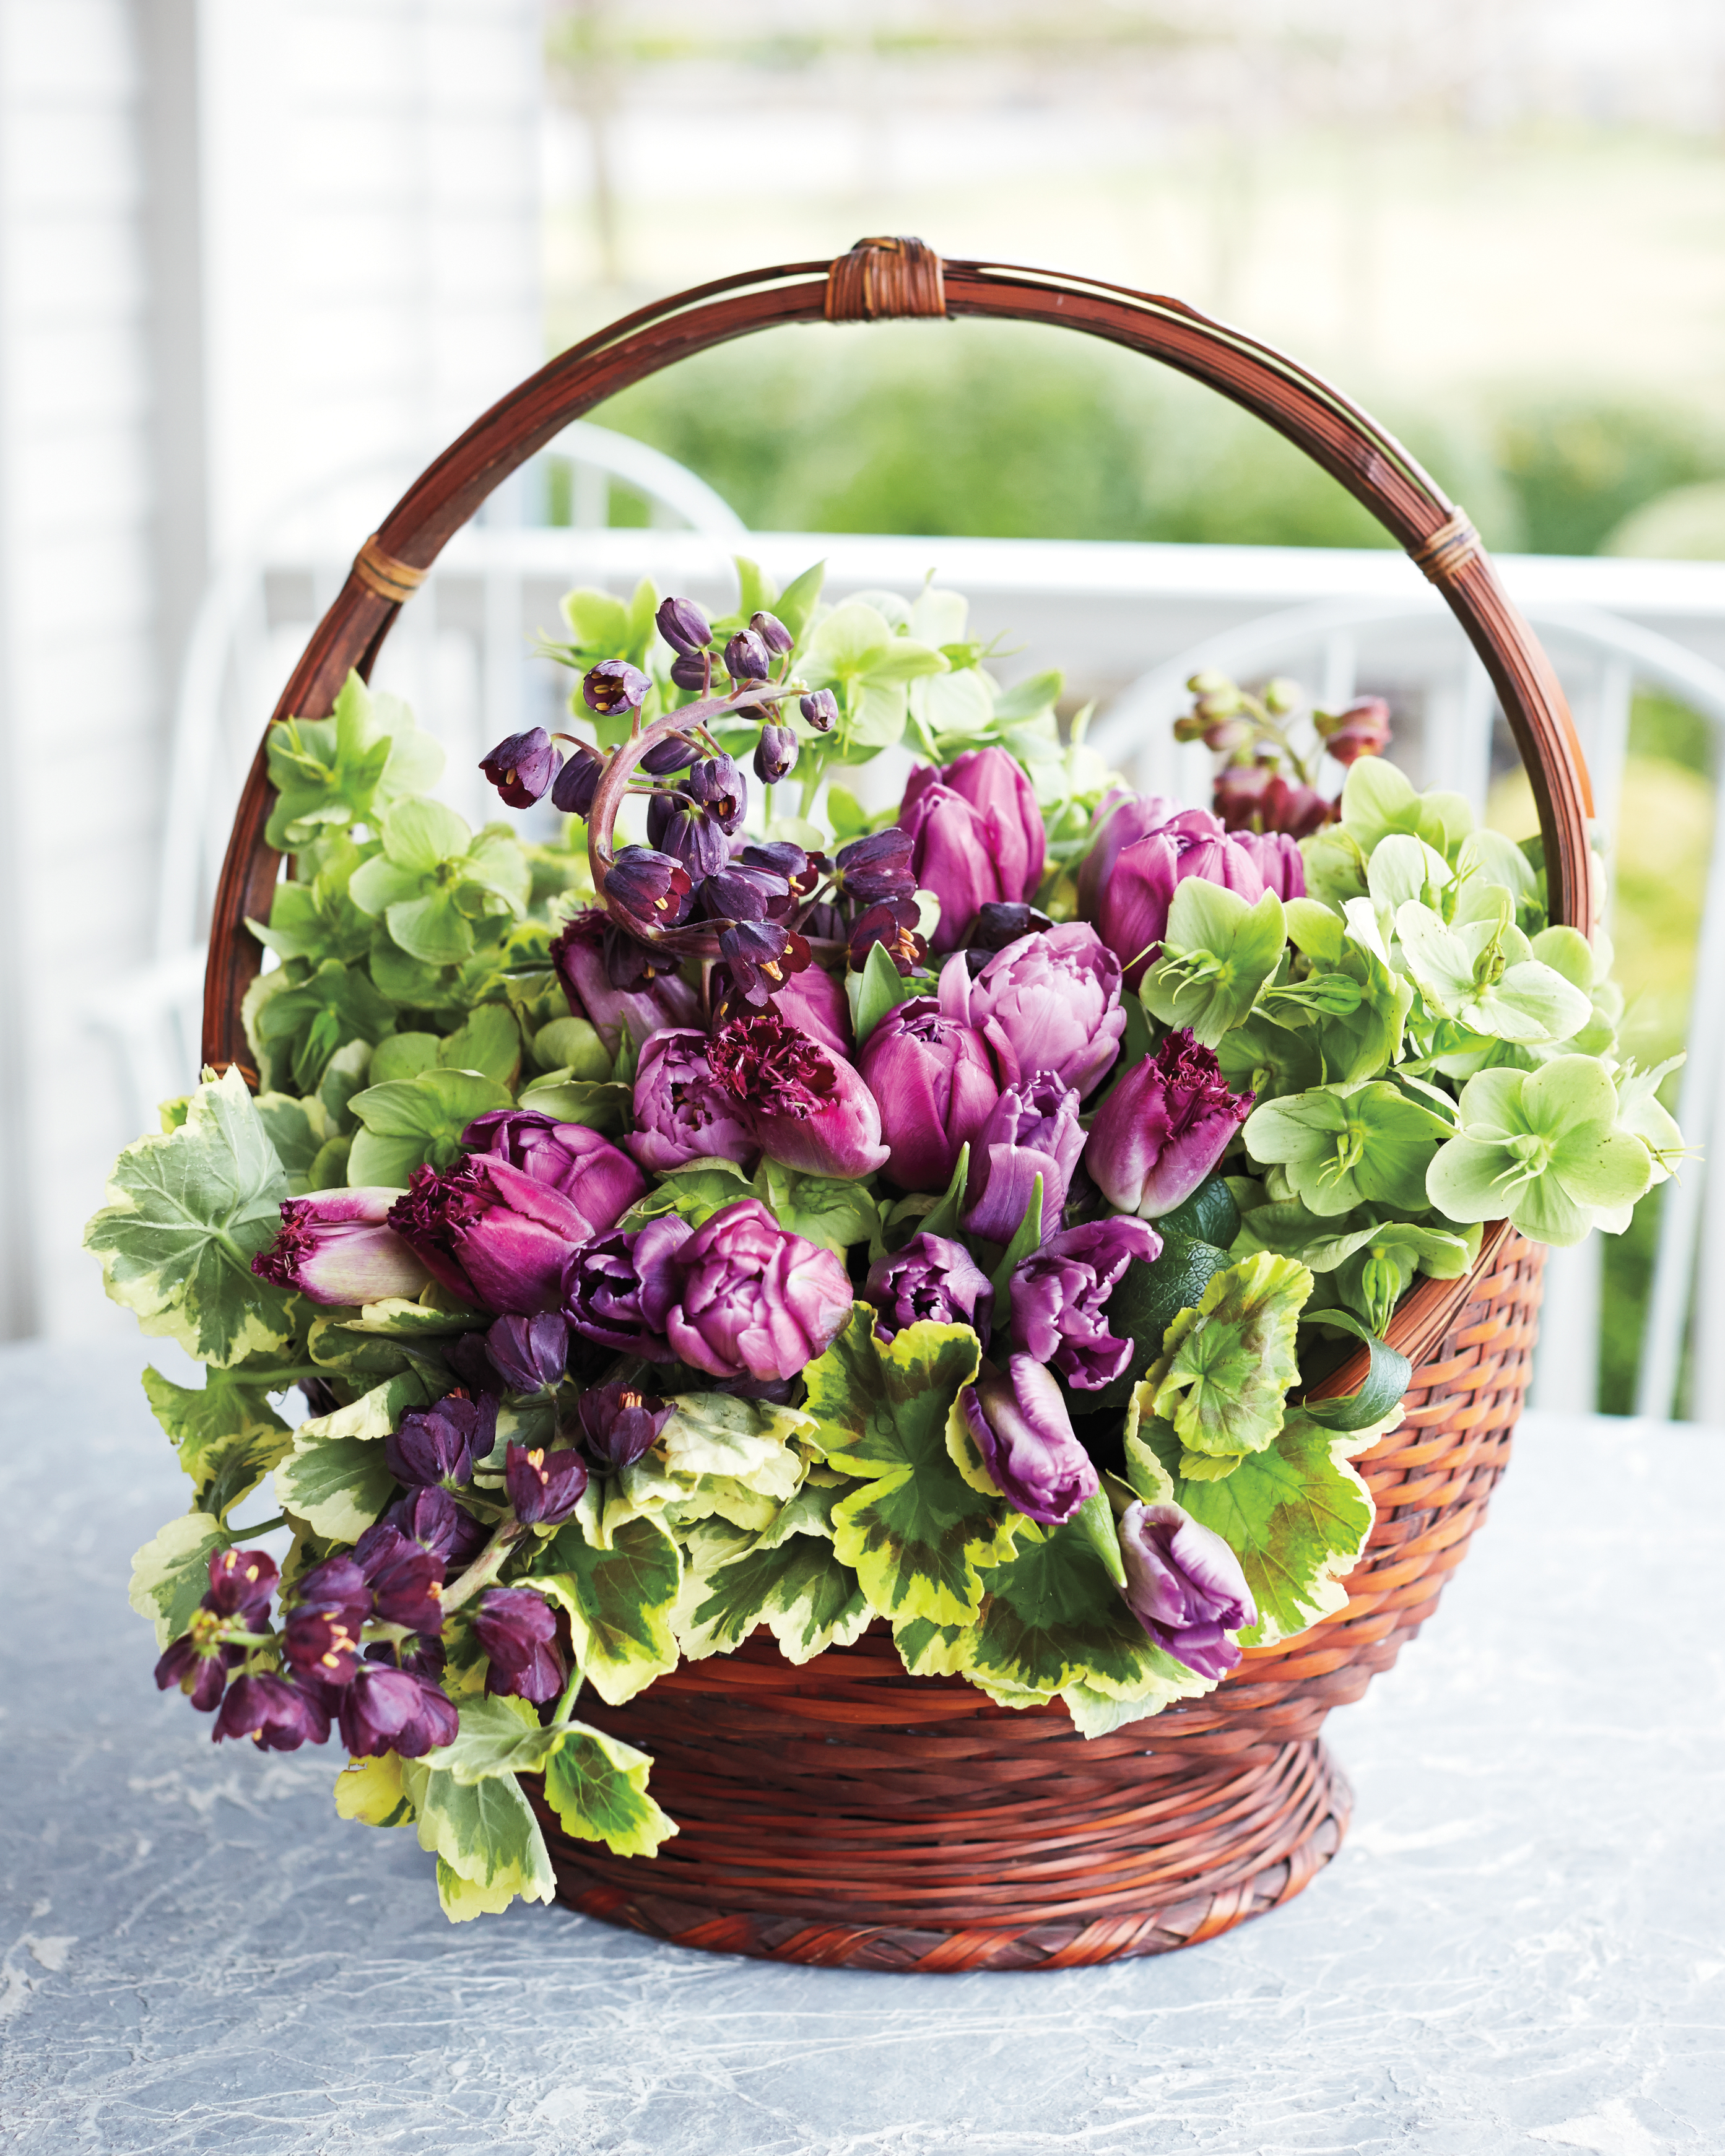 Basket Brimming with Beautiful Blooms